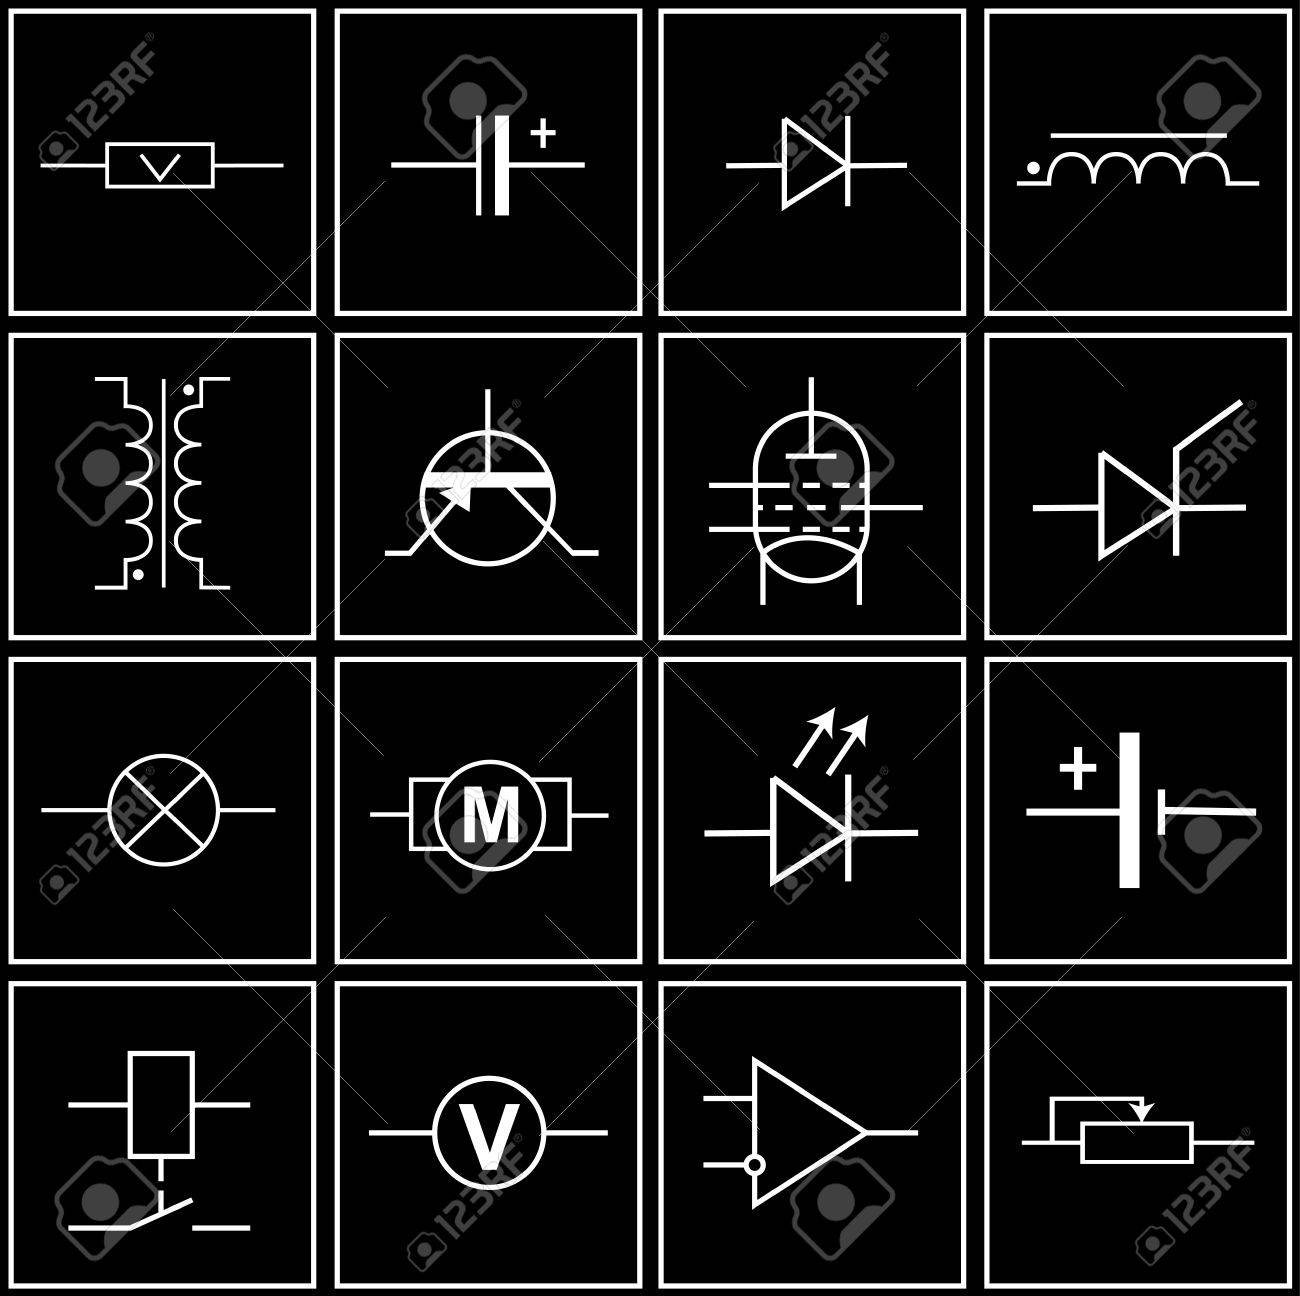 Outstanding Logos Symbols Of Electronic Components On Circuit Diagrams Royalty Wiring 101 Orsalhahutechinfo